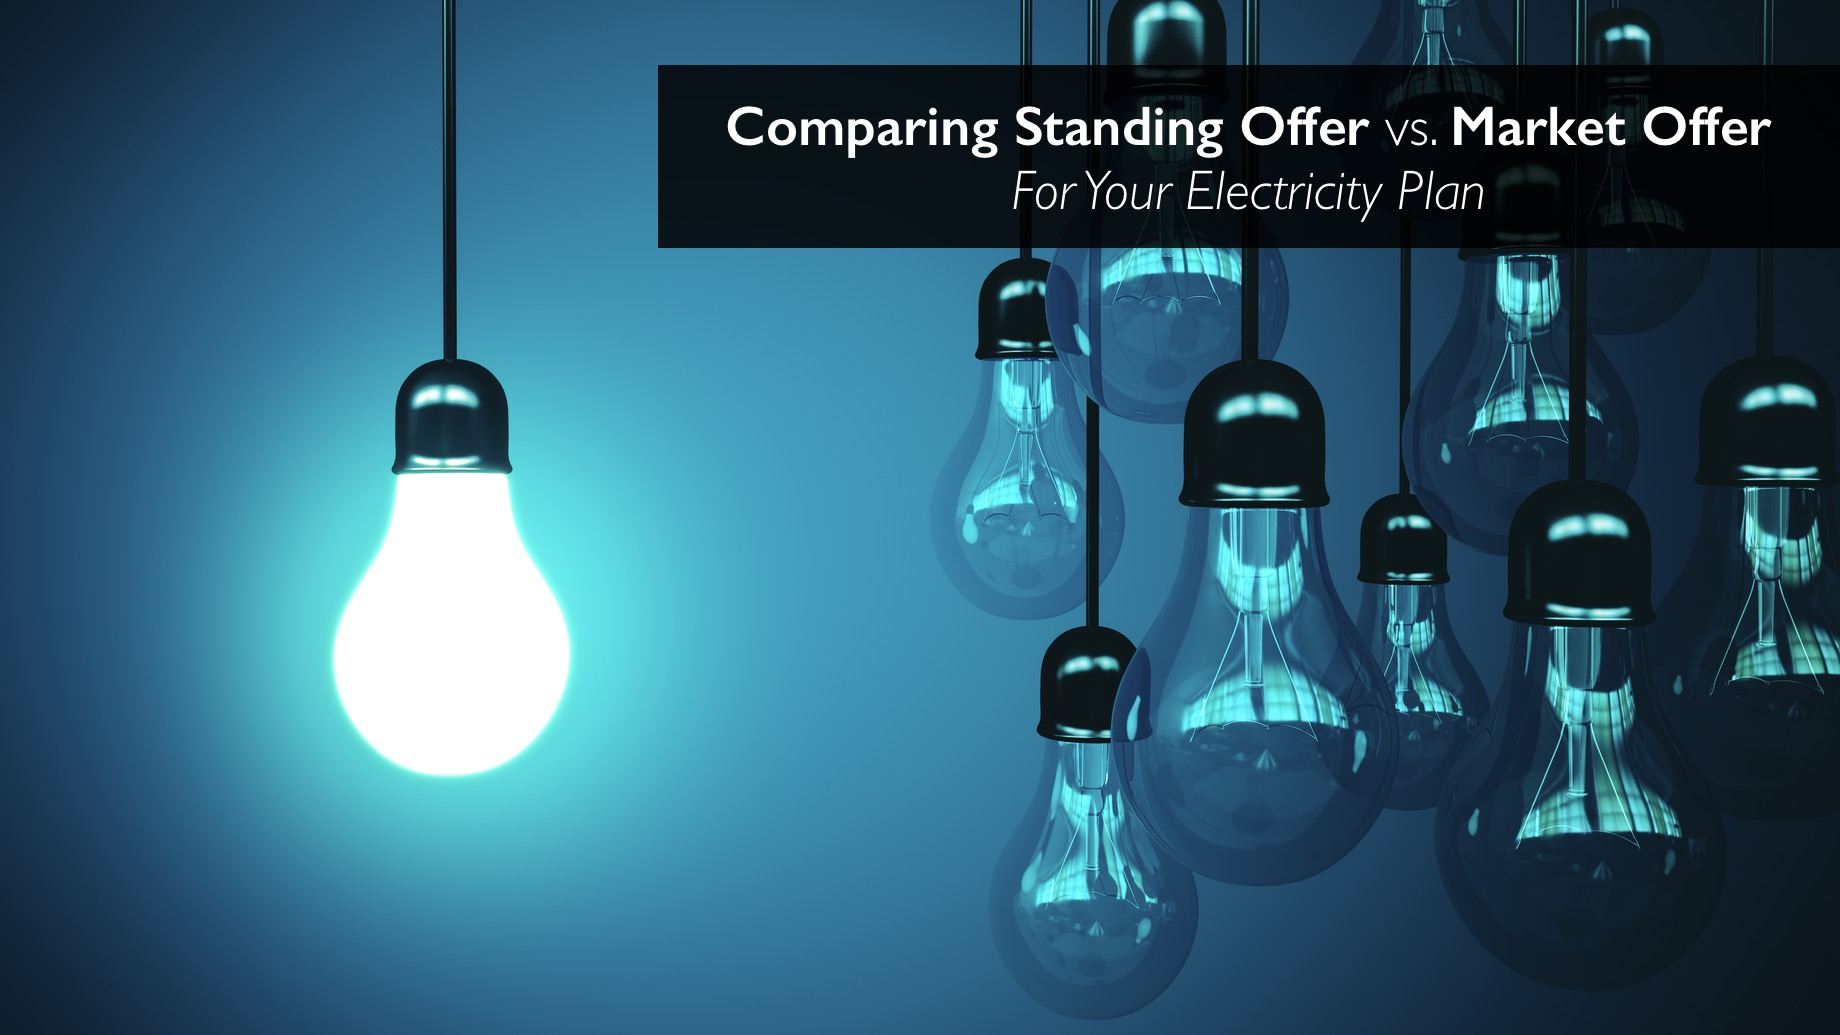 Comparing Standing Offer vs. Market Offer For Your Electricity Plan